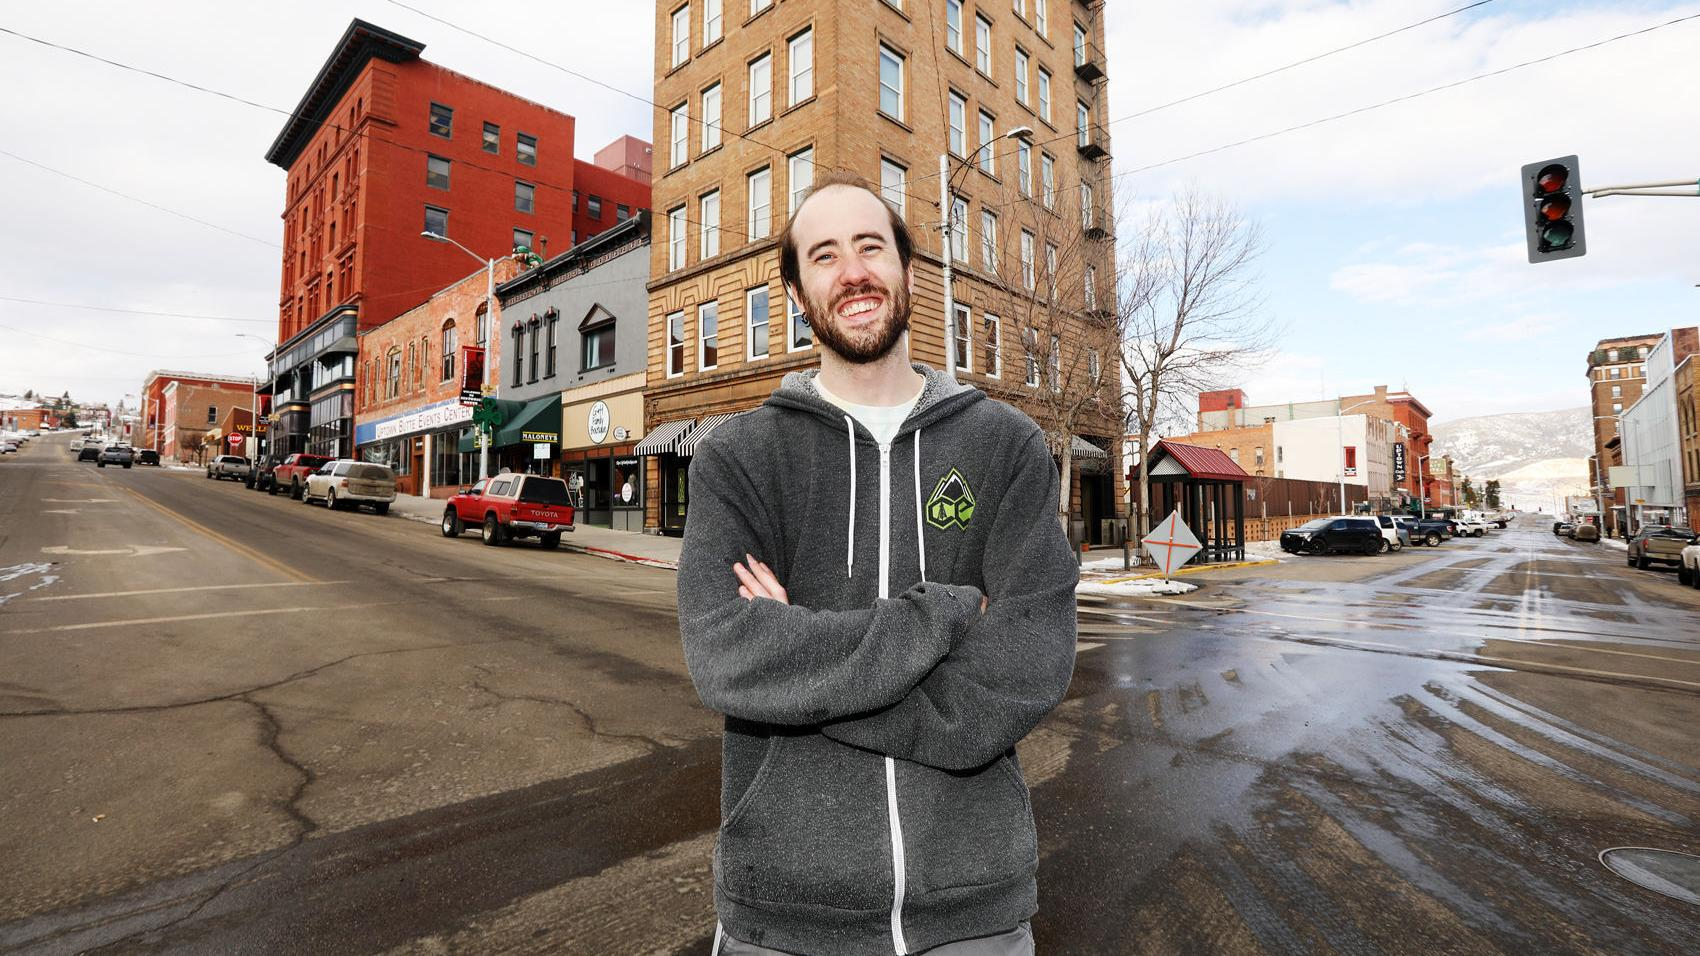 'Standing parade' a first for St. Patrick's Day in Butte